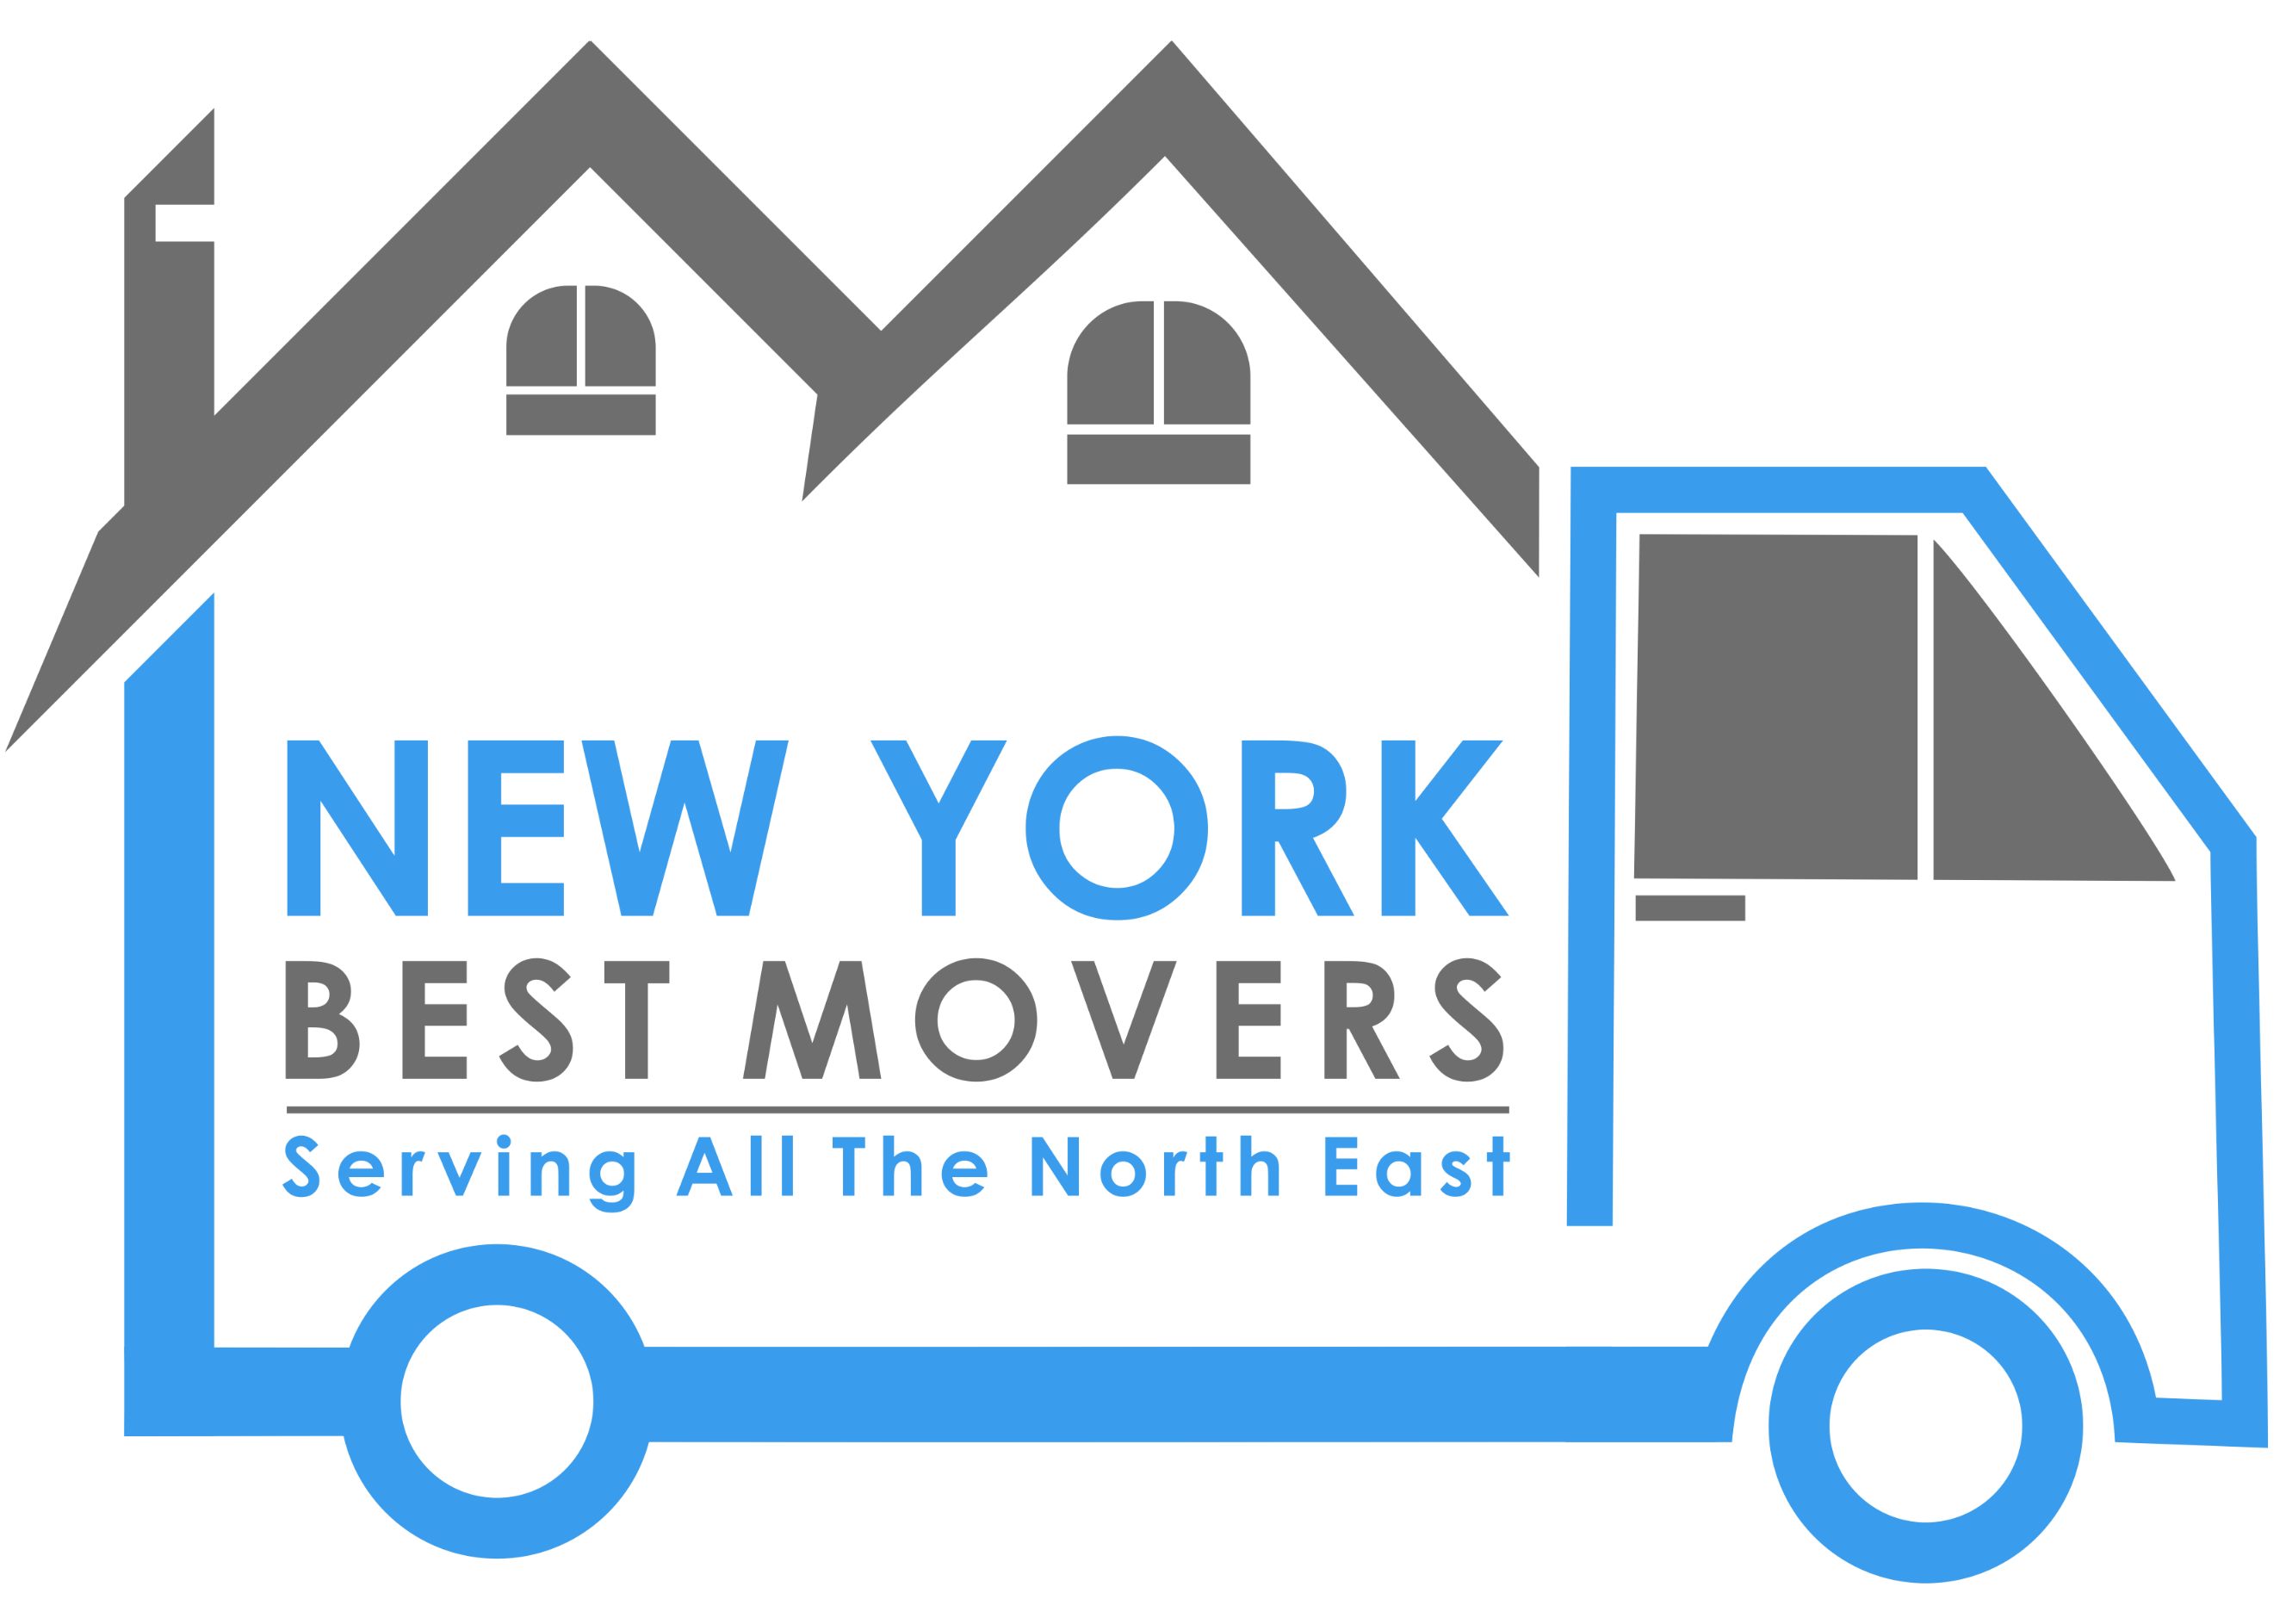 New York Best Movers